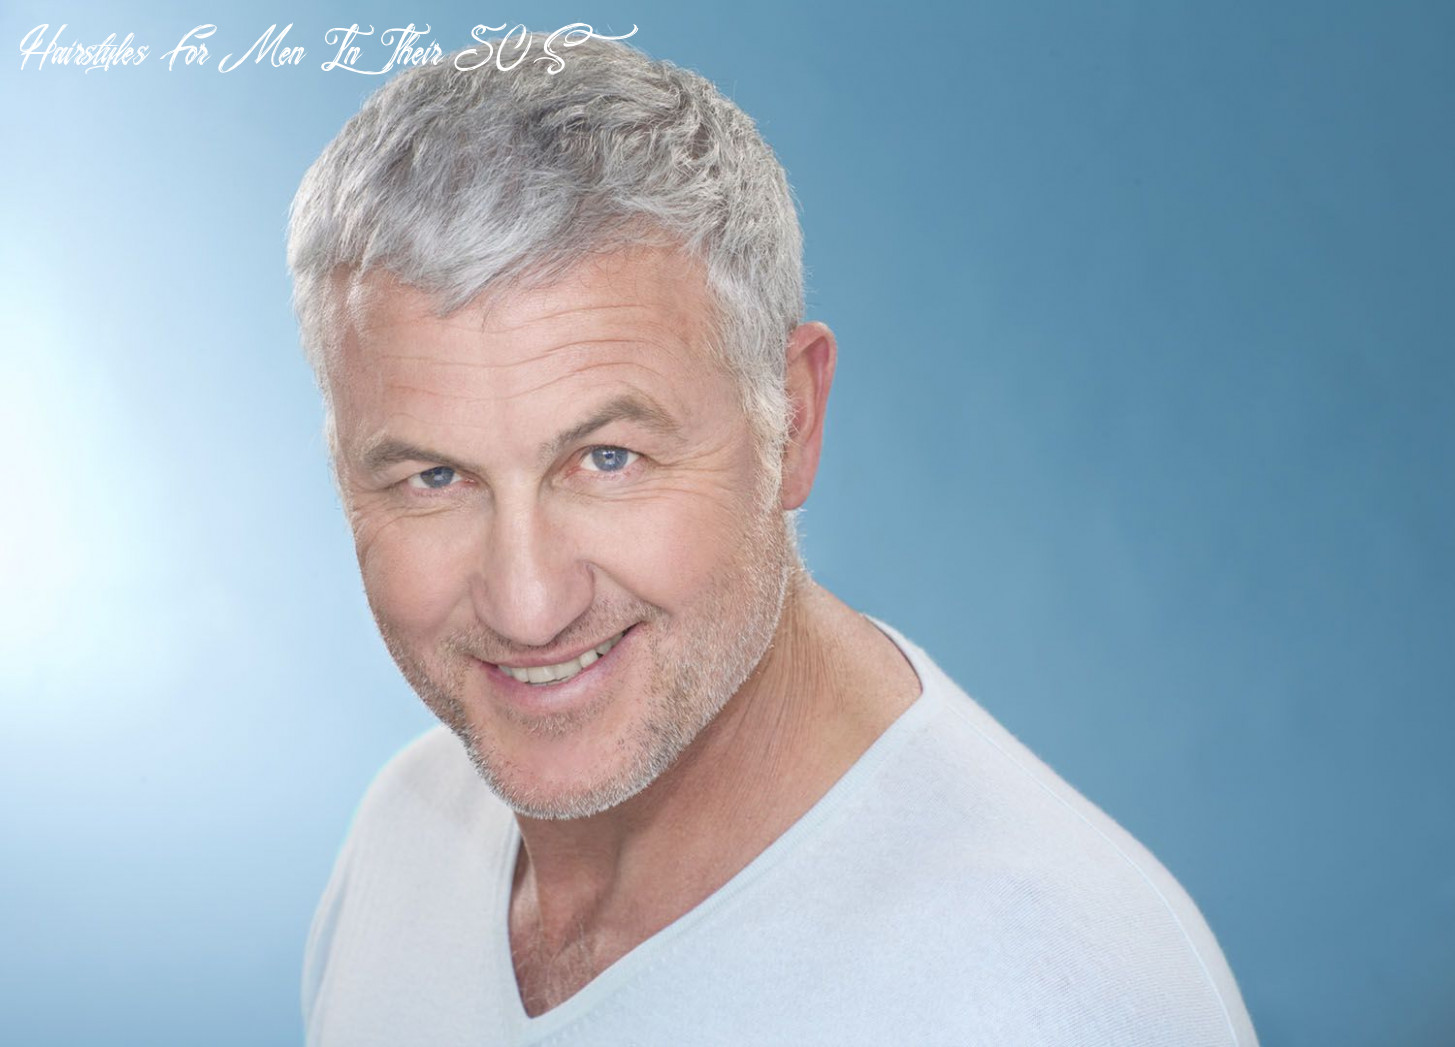 Cool haircuts for men over 9 hairstyles for men in their 50s